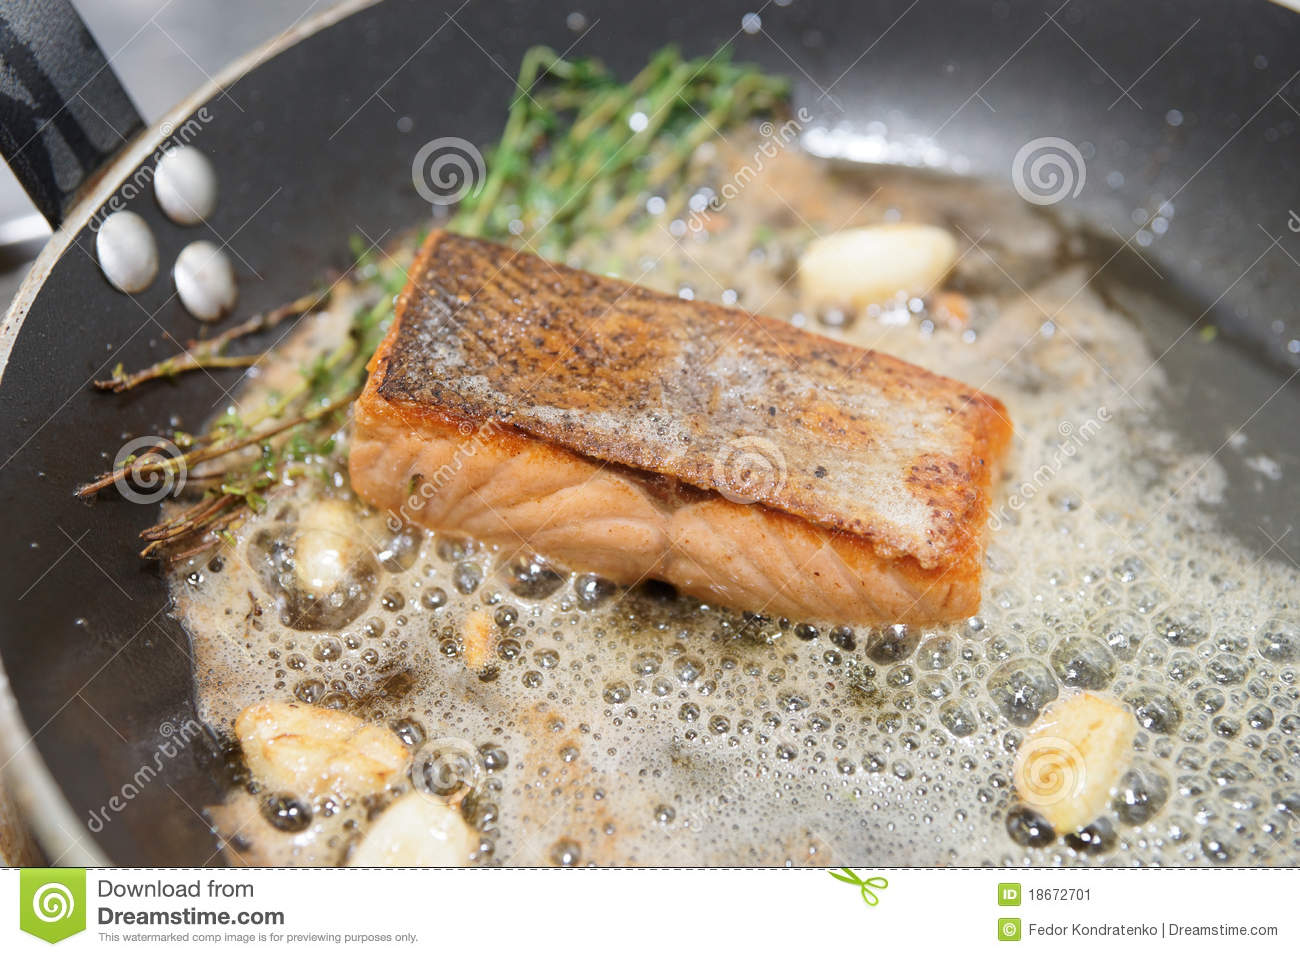 Salmon fillet being fried with thyme and garlic in butter.